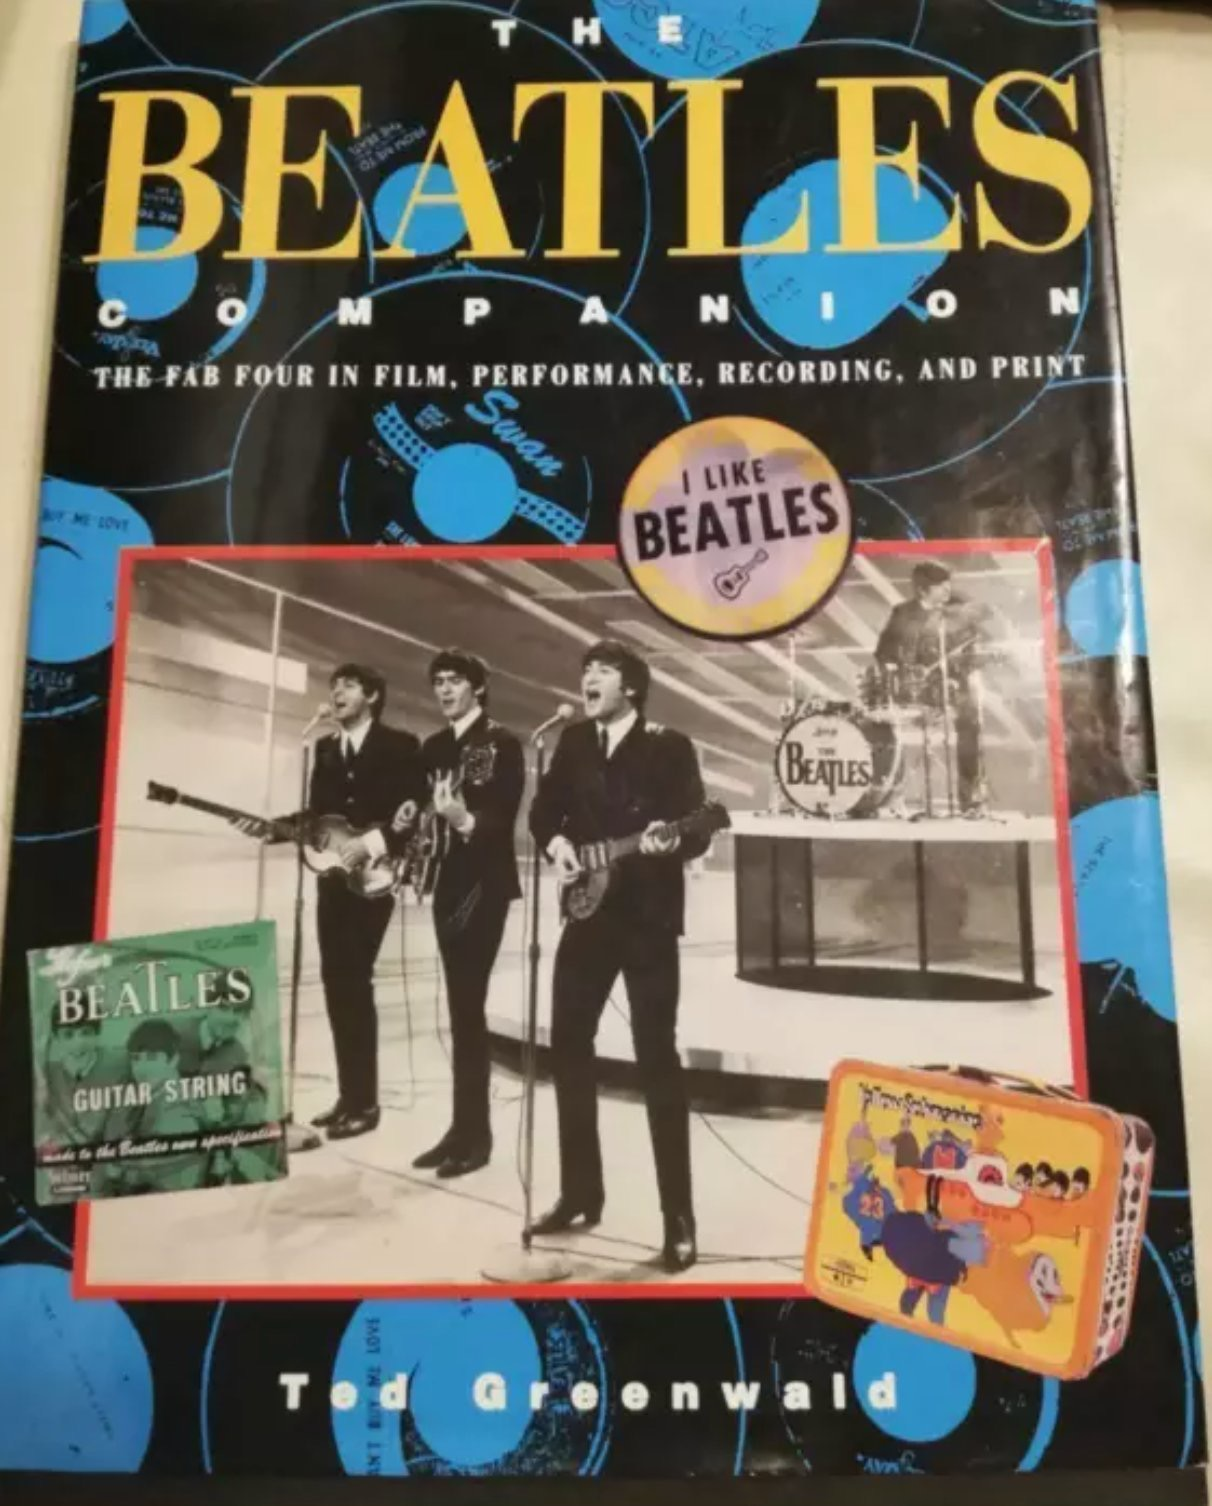 The Beatles Companion The Fab Four In Film, Performance, Recording, And Print _ TED GREENWALD